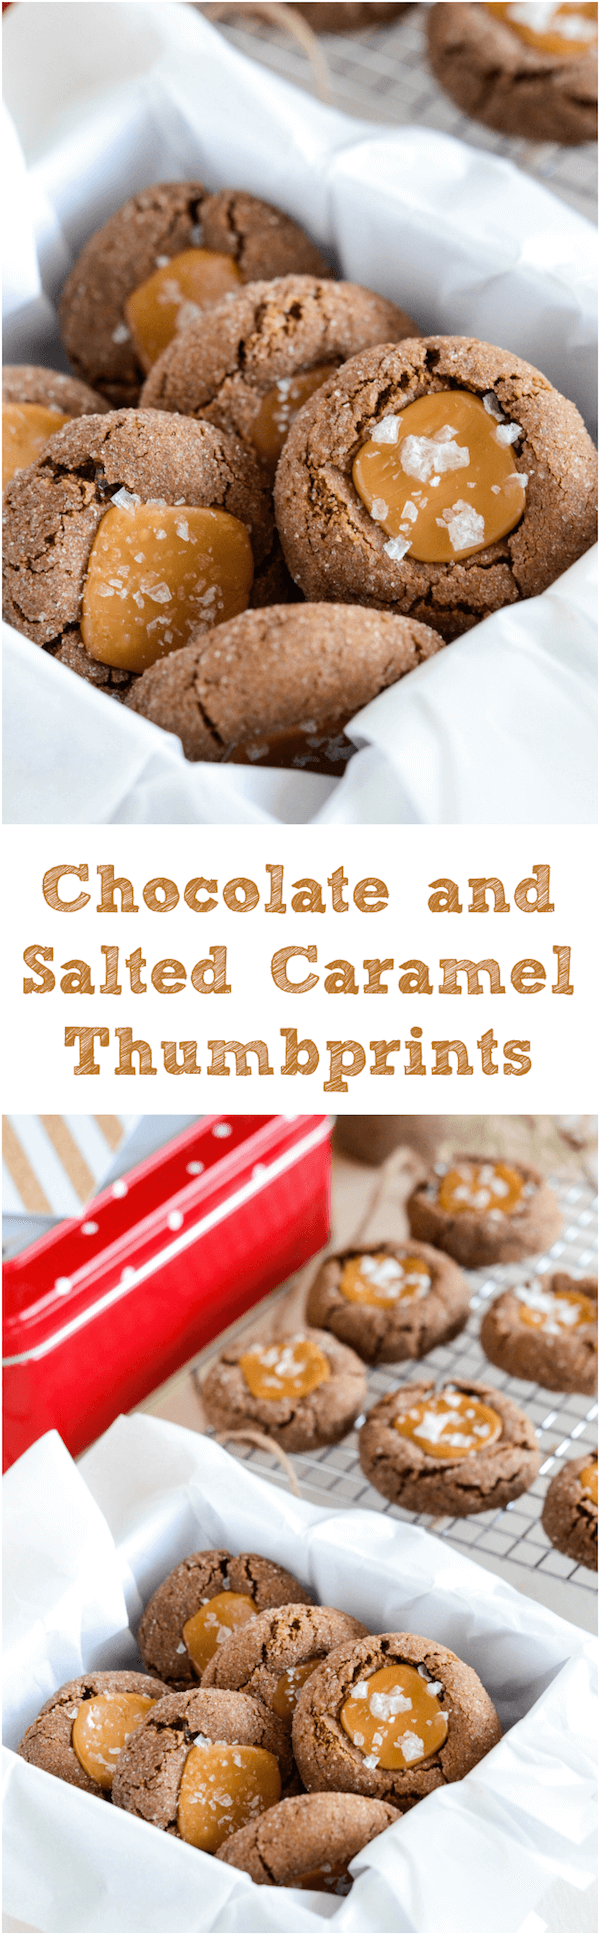 Chocolate and Salted Caramel Thumbprint Cookies